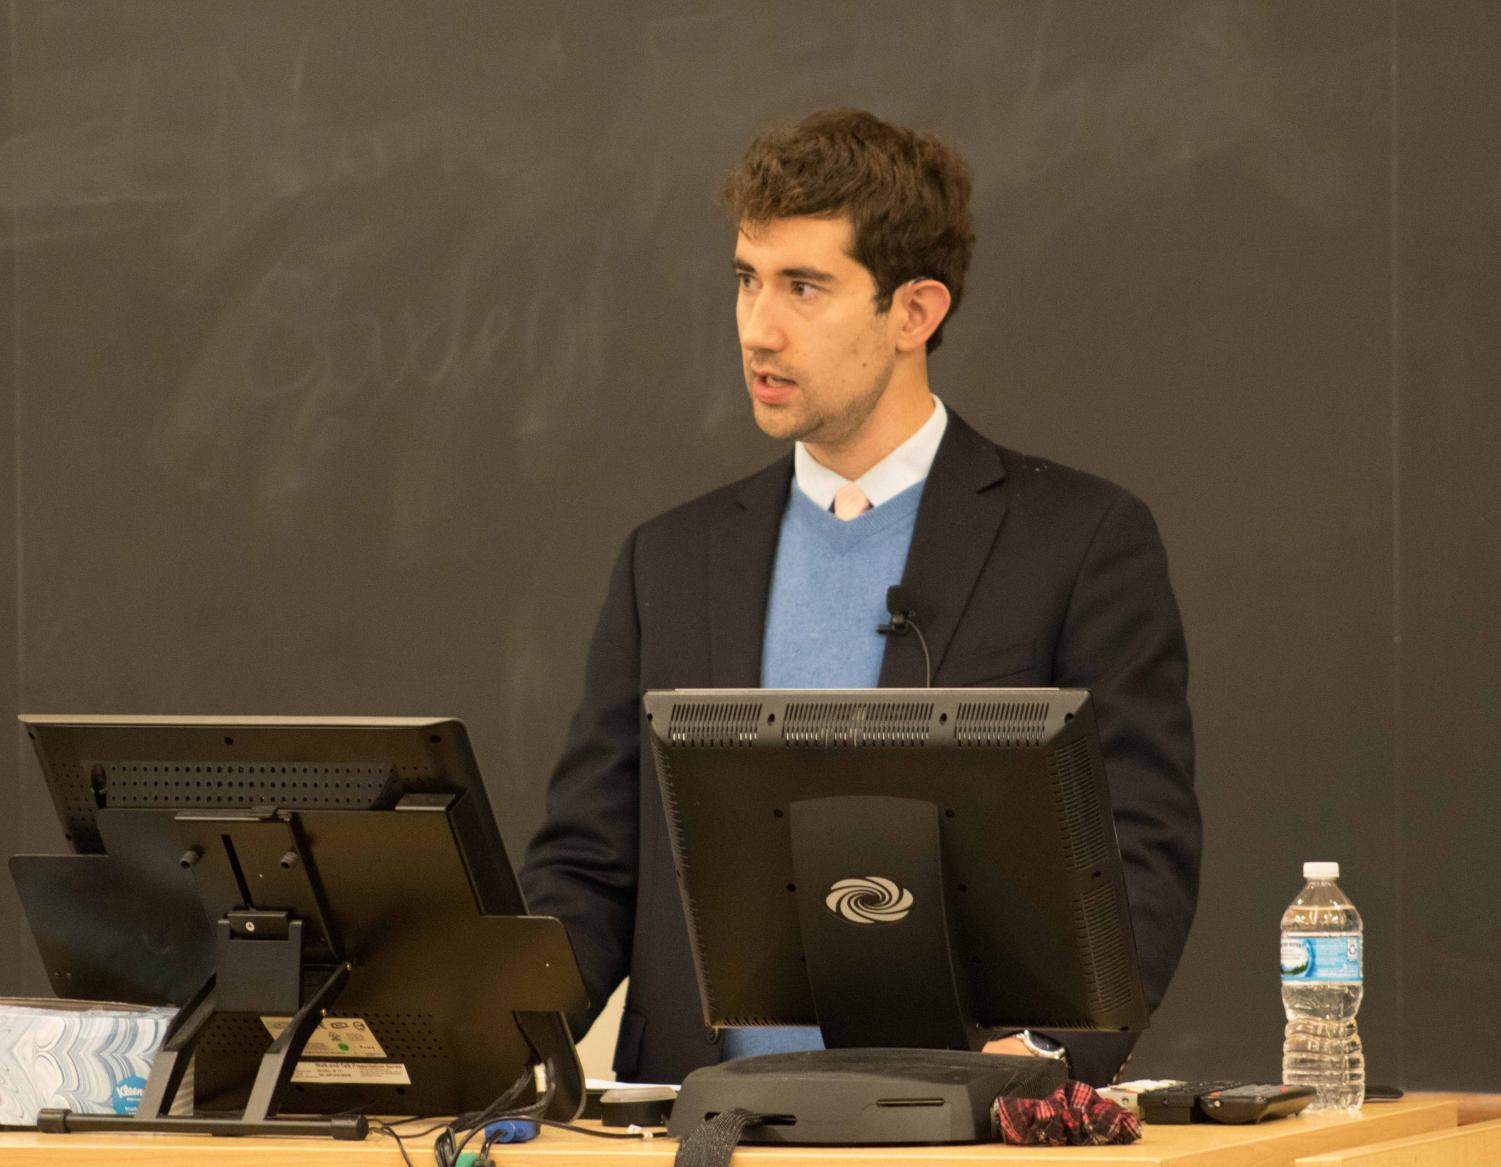 Eric Schmalz, community manager for the History Unfolded project at the United States Holocaust Museum visited to give a speech on anti-semitism.